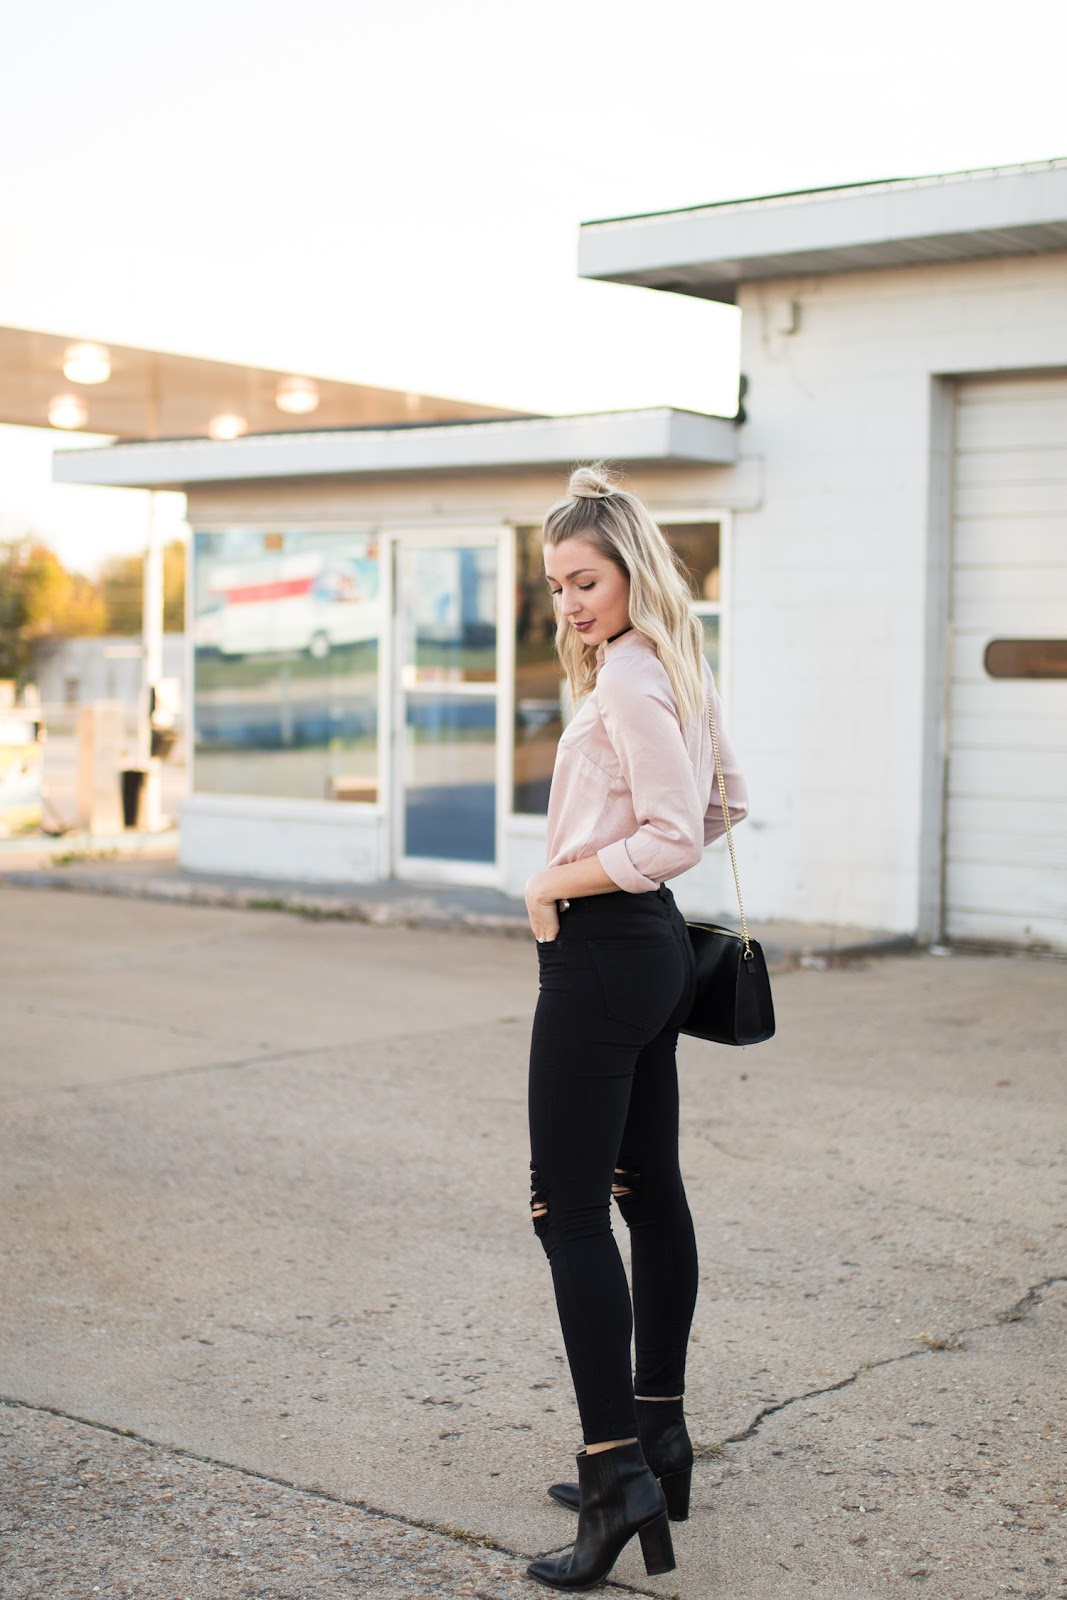 Blush pink top paired with black